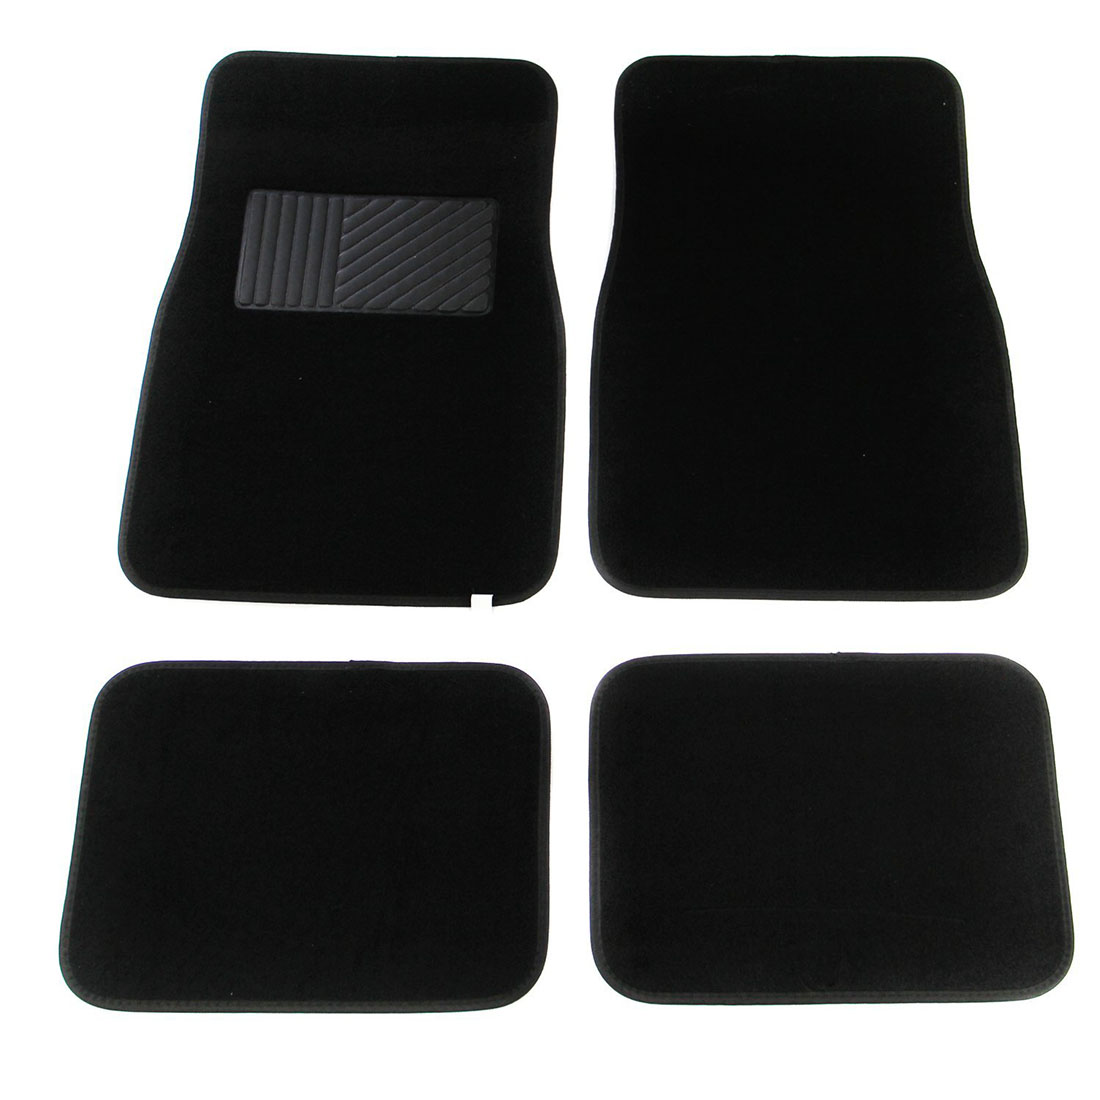 Multi Season Carpet Floor Mats 4pc Set Black Fit Most Cars